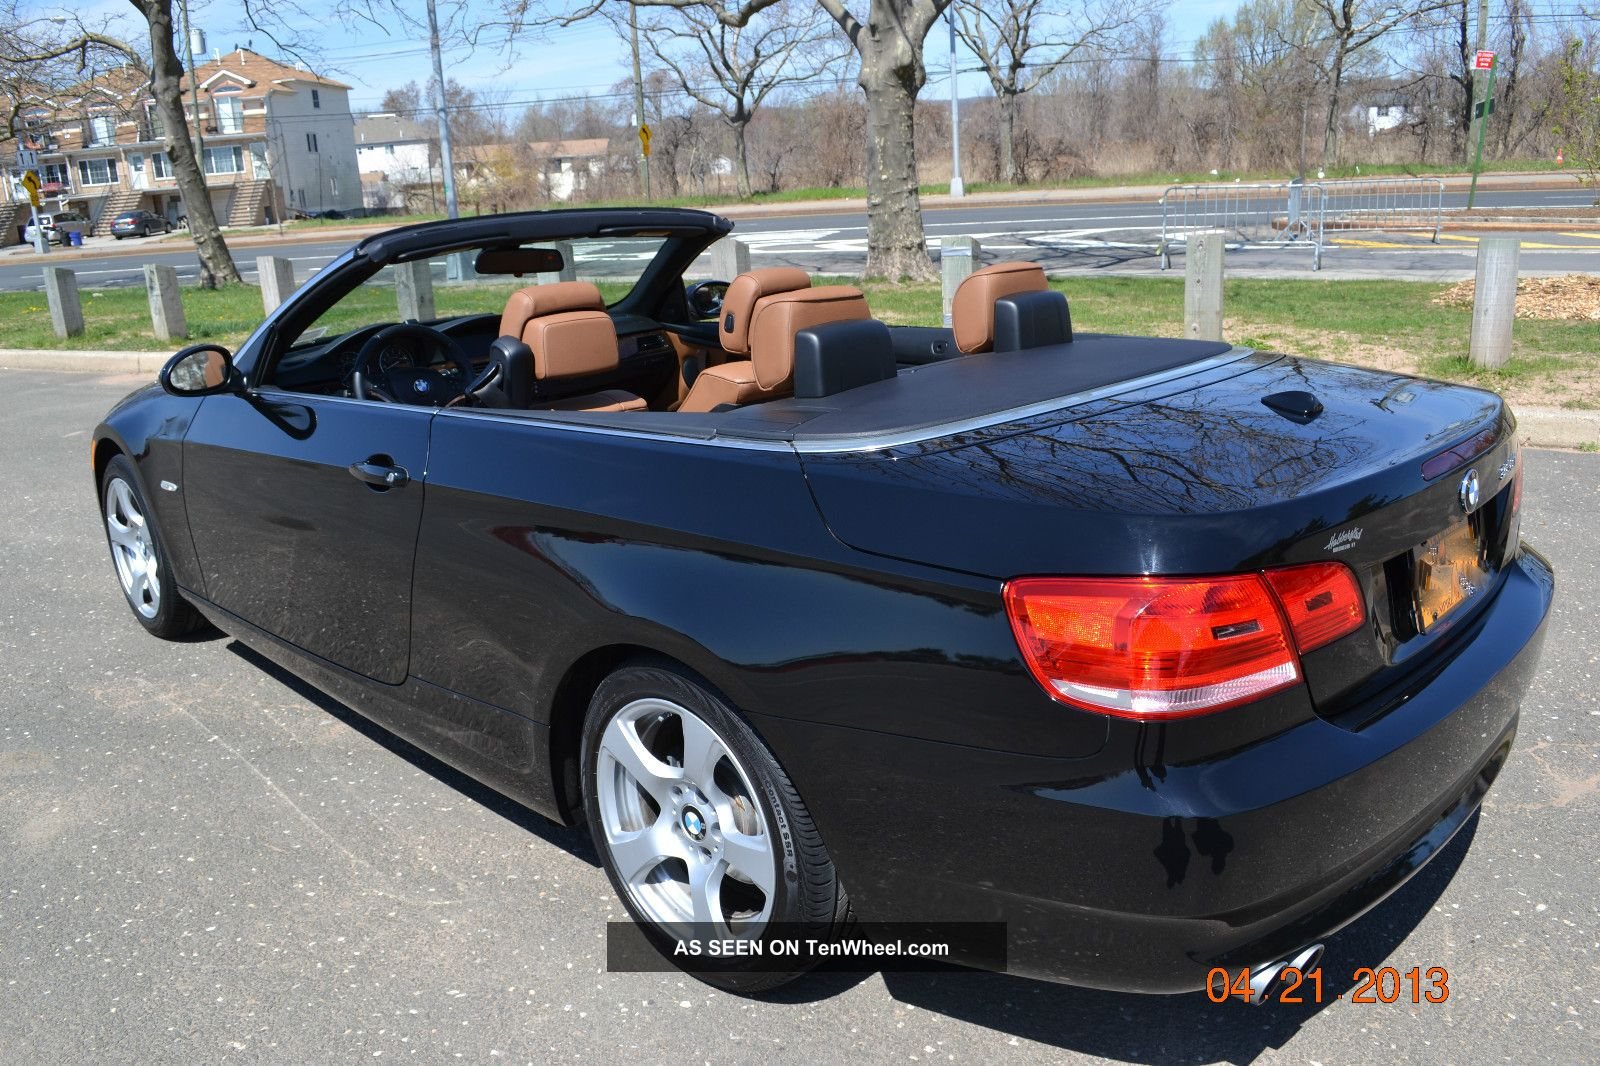 2009 Bmw 328i Black Convertible 2 Door 3. 0l 3 Series photo